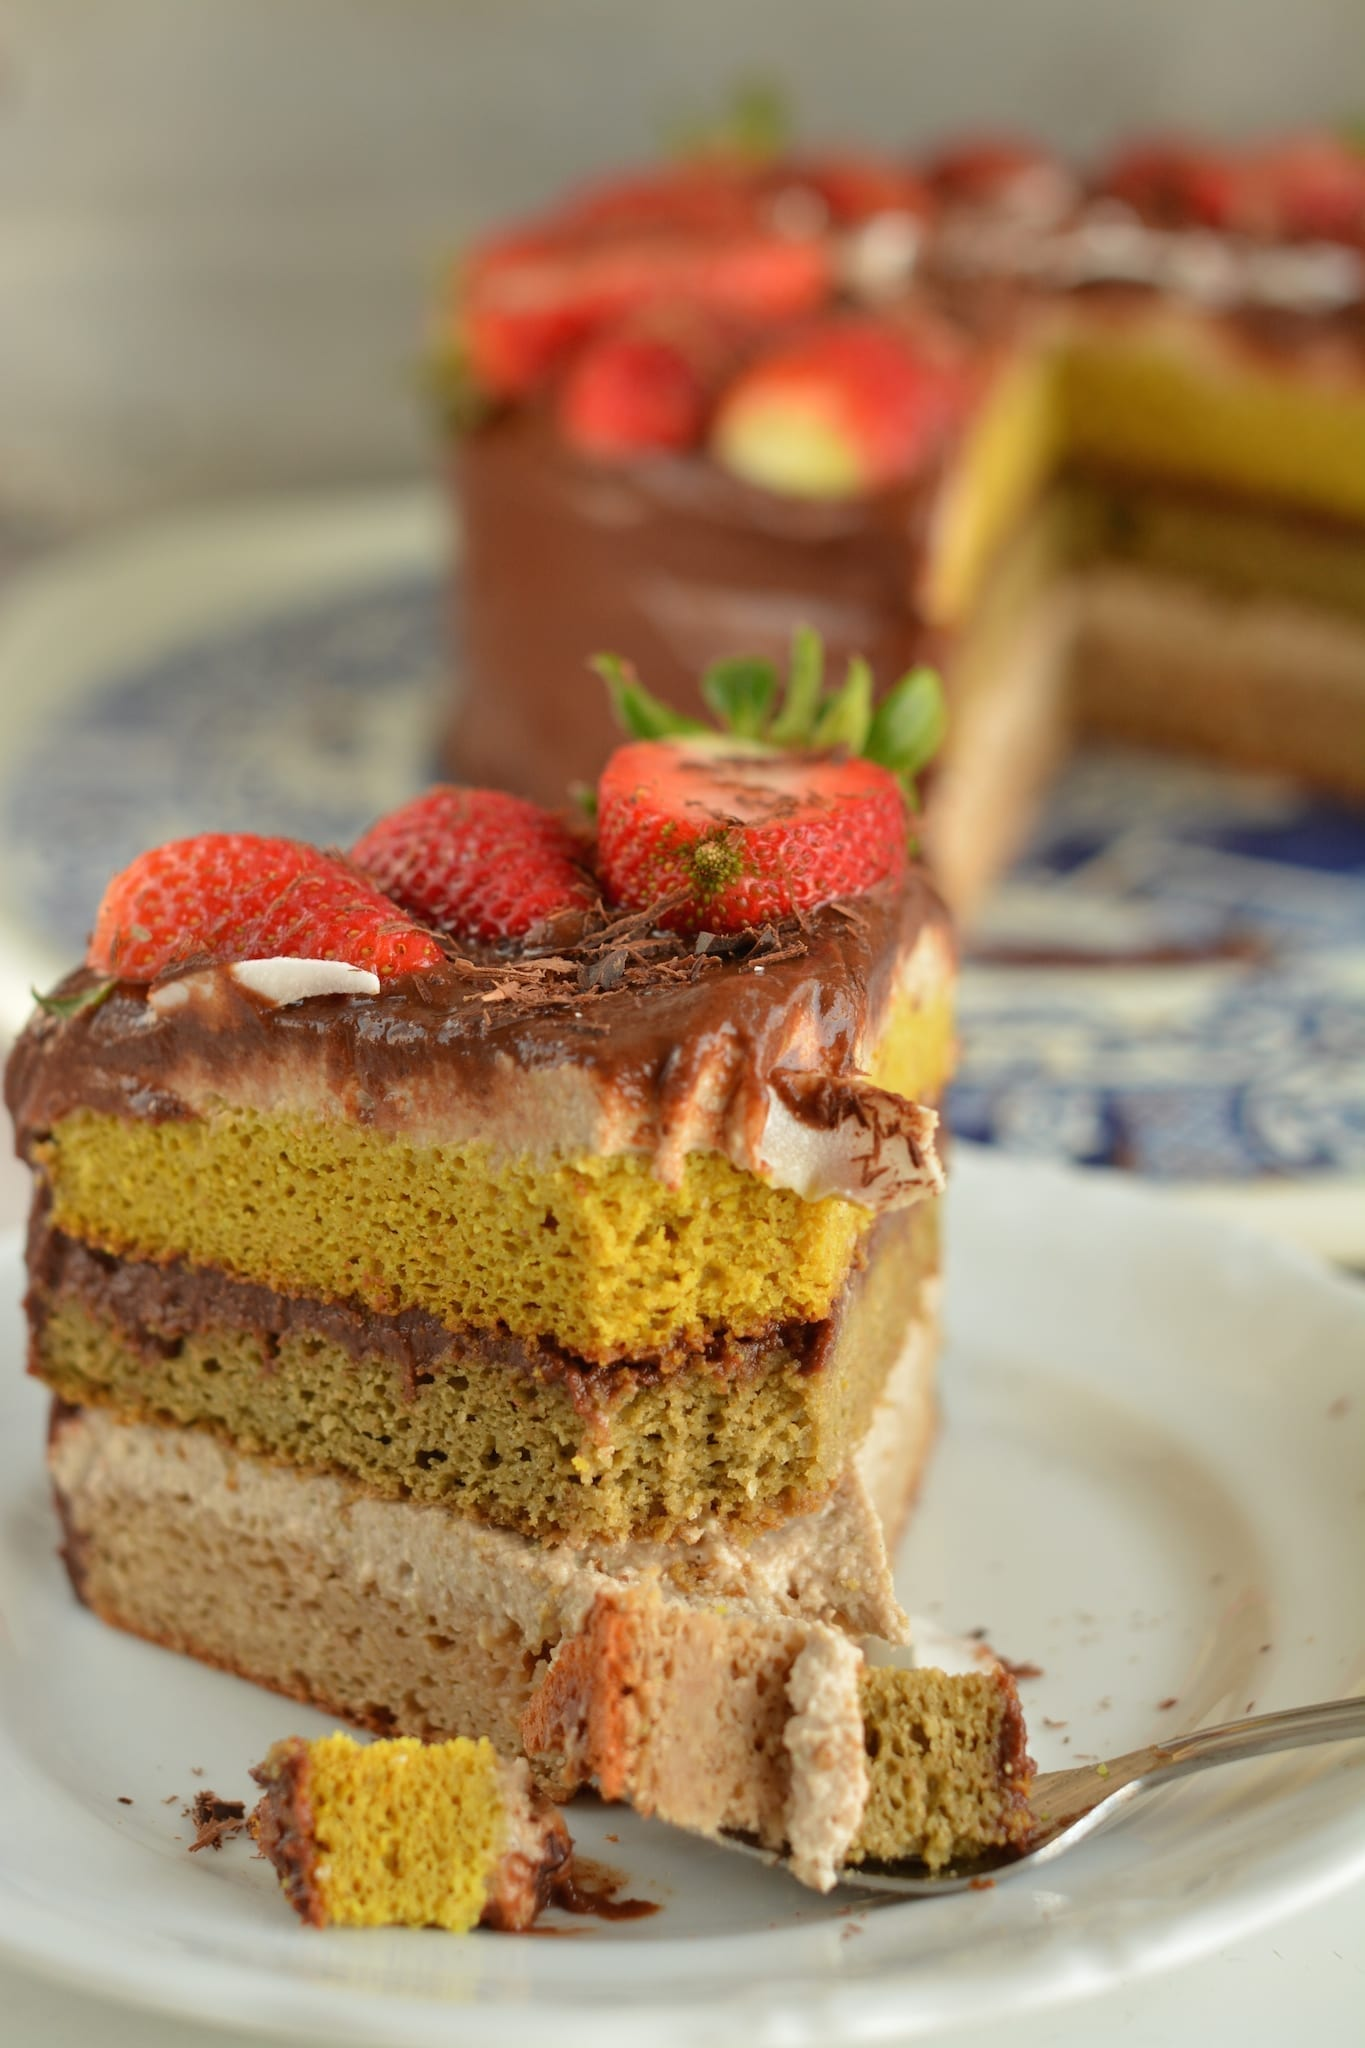 Ricotta-Chocolate Sponge Cake, Gluten-Free and Vegan